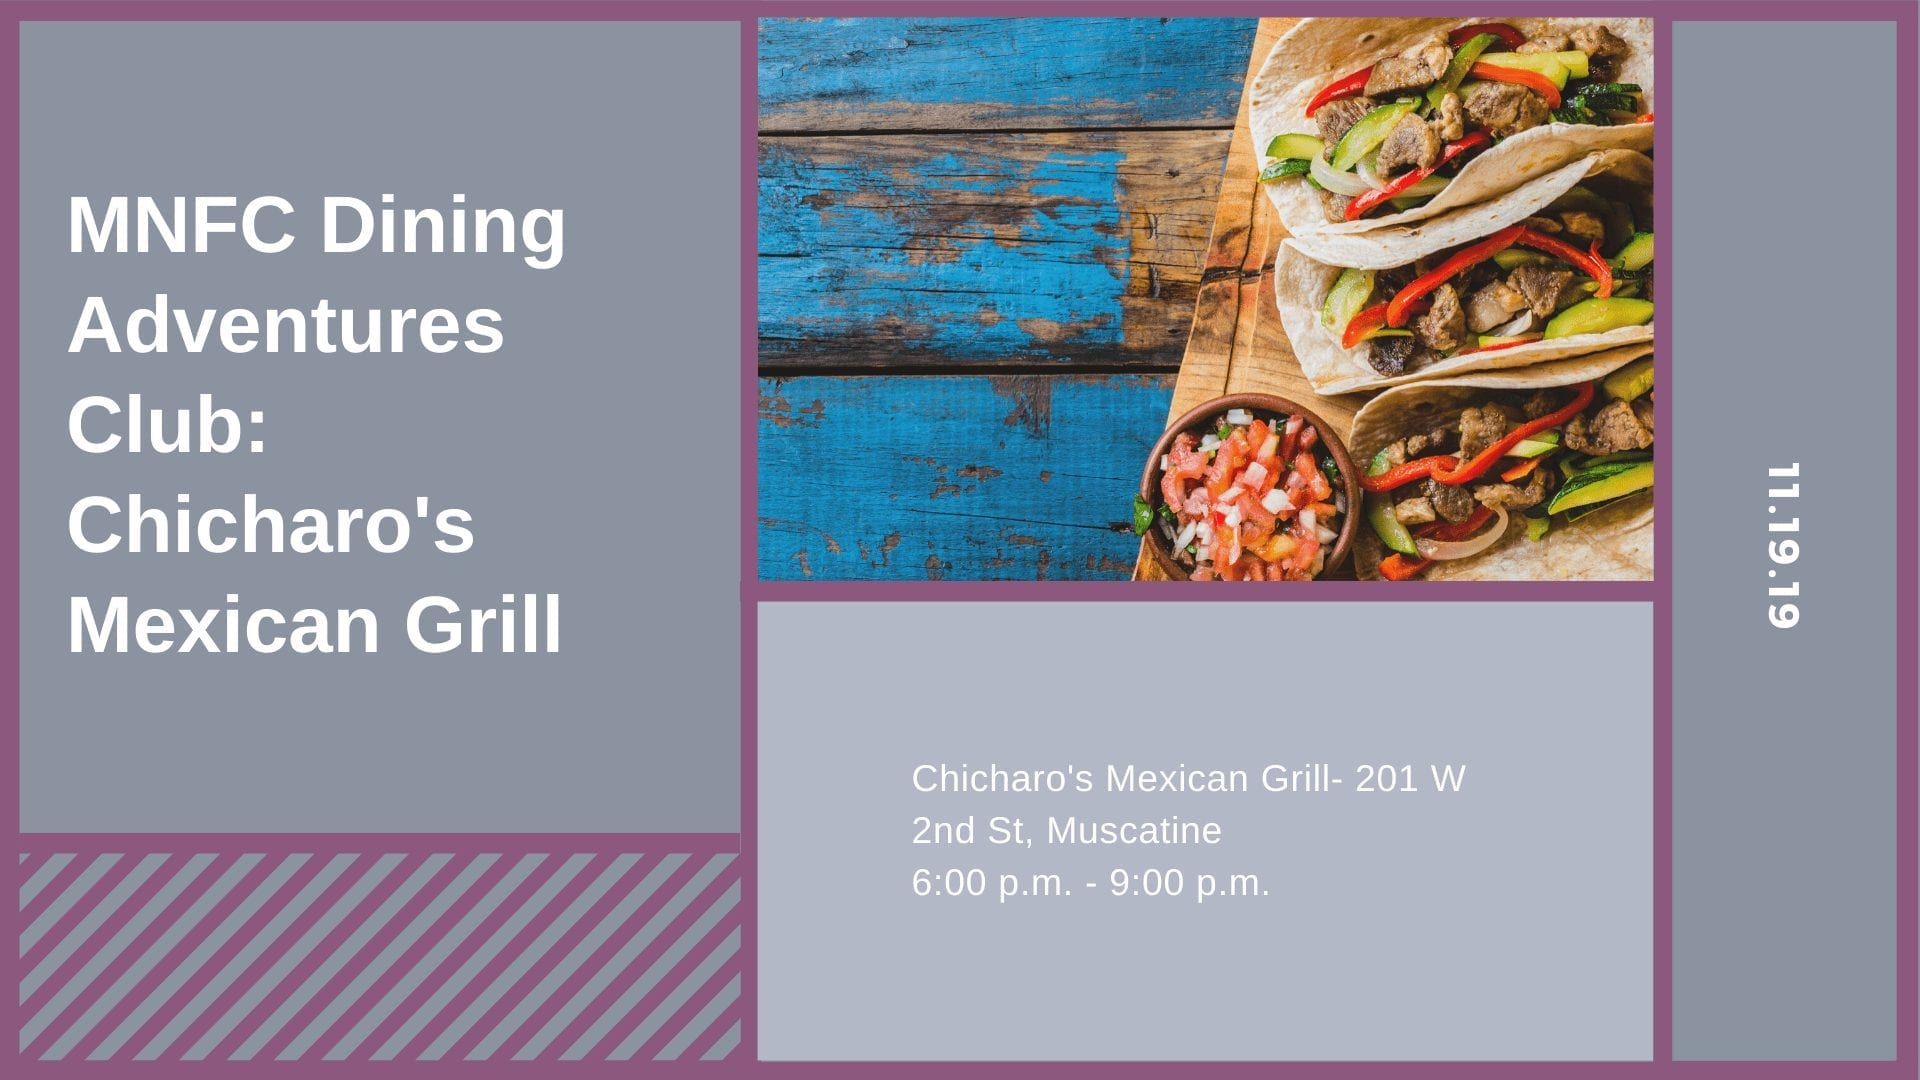 MNFC Dining Adventures Club: Chicharo's Mexican Grill